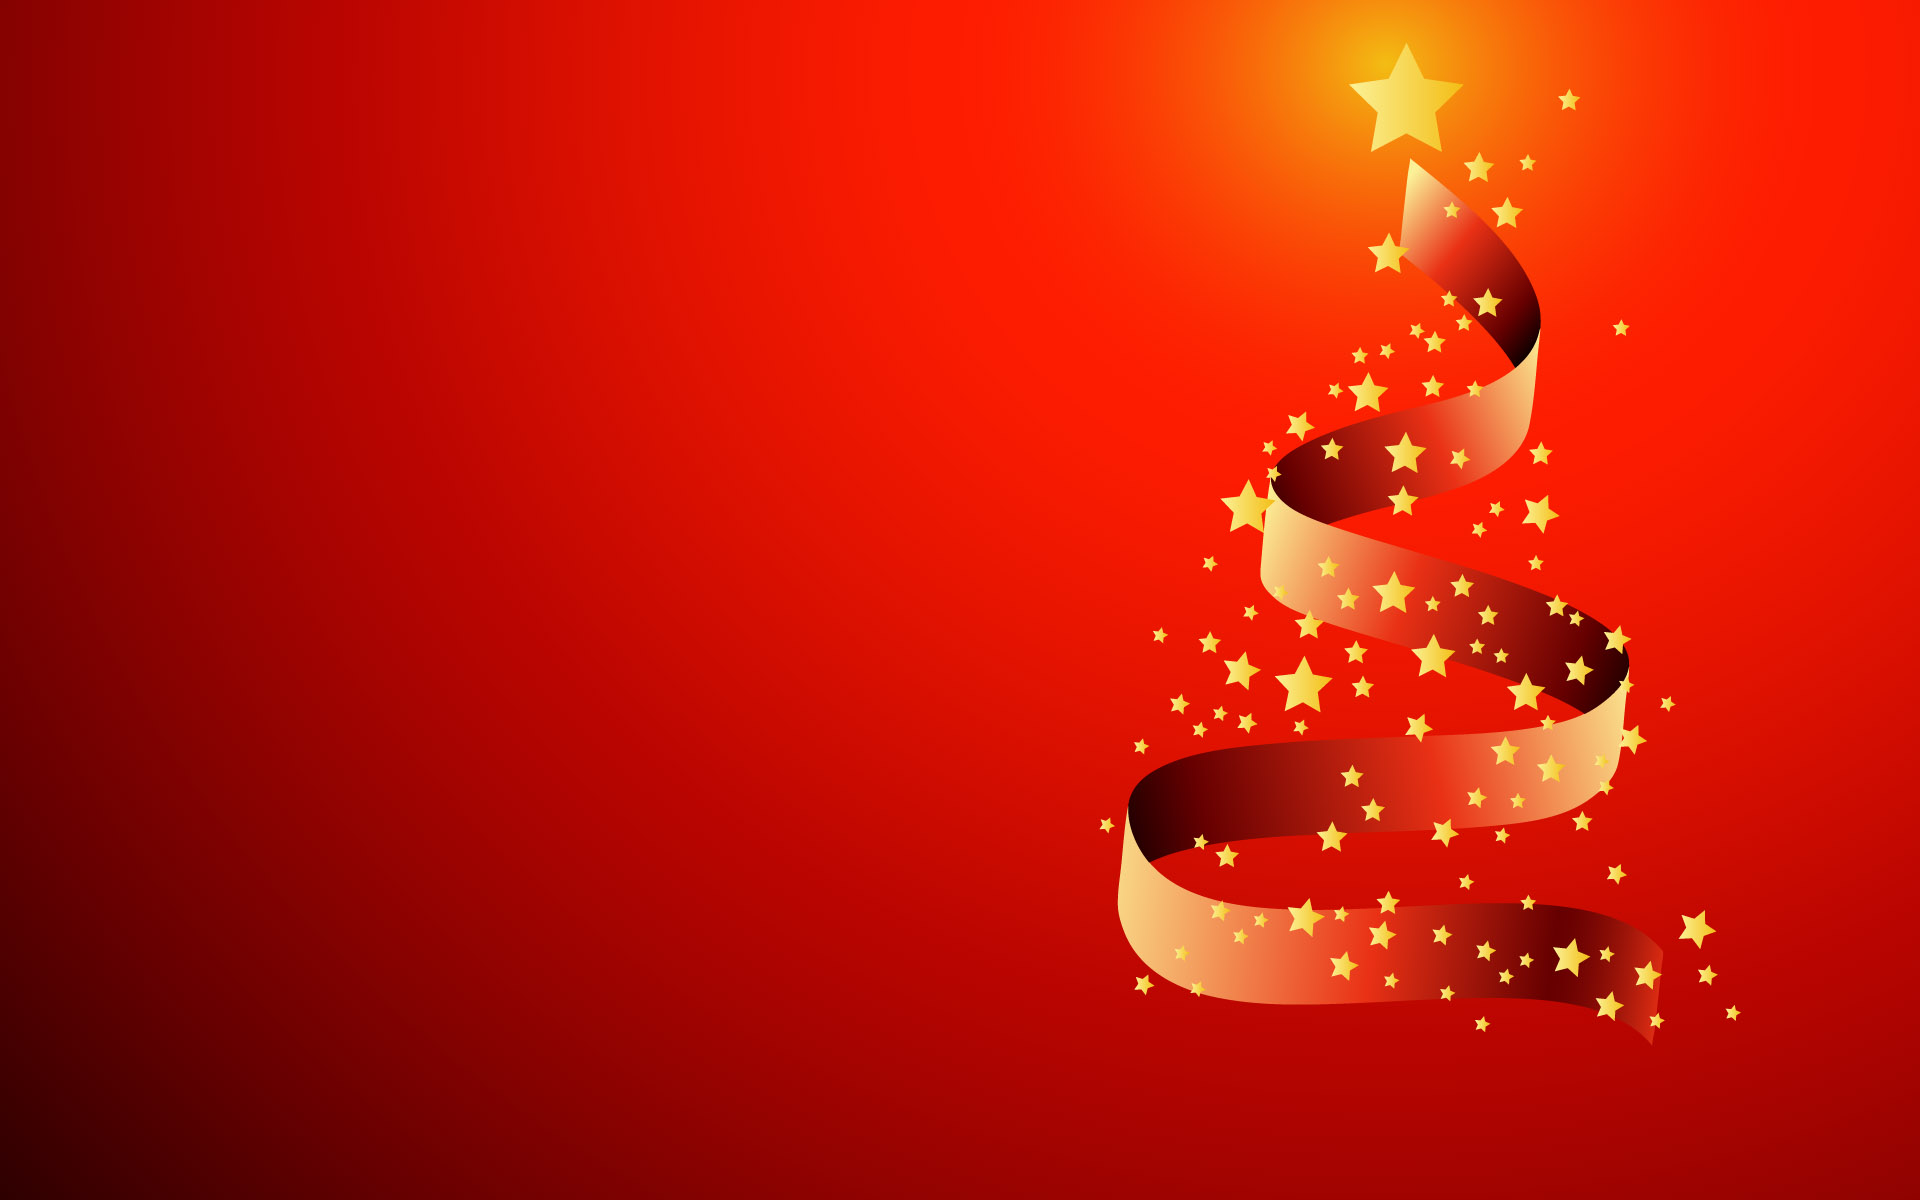 sfondo Natale – Christmas background | Vettoriali Gratis.it (Free ...